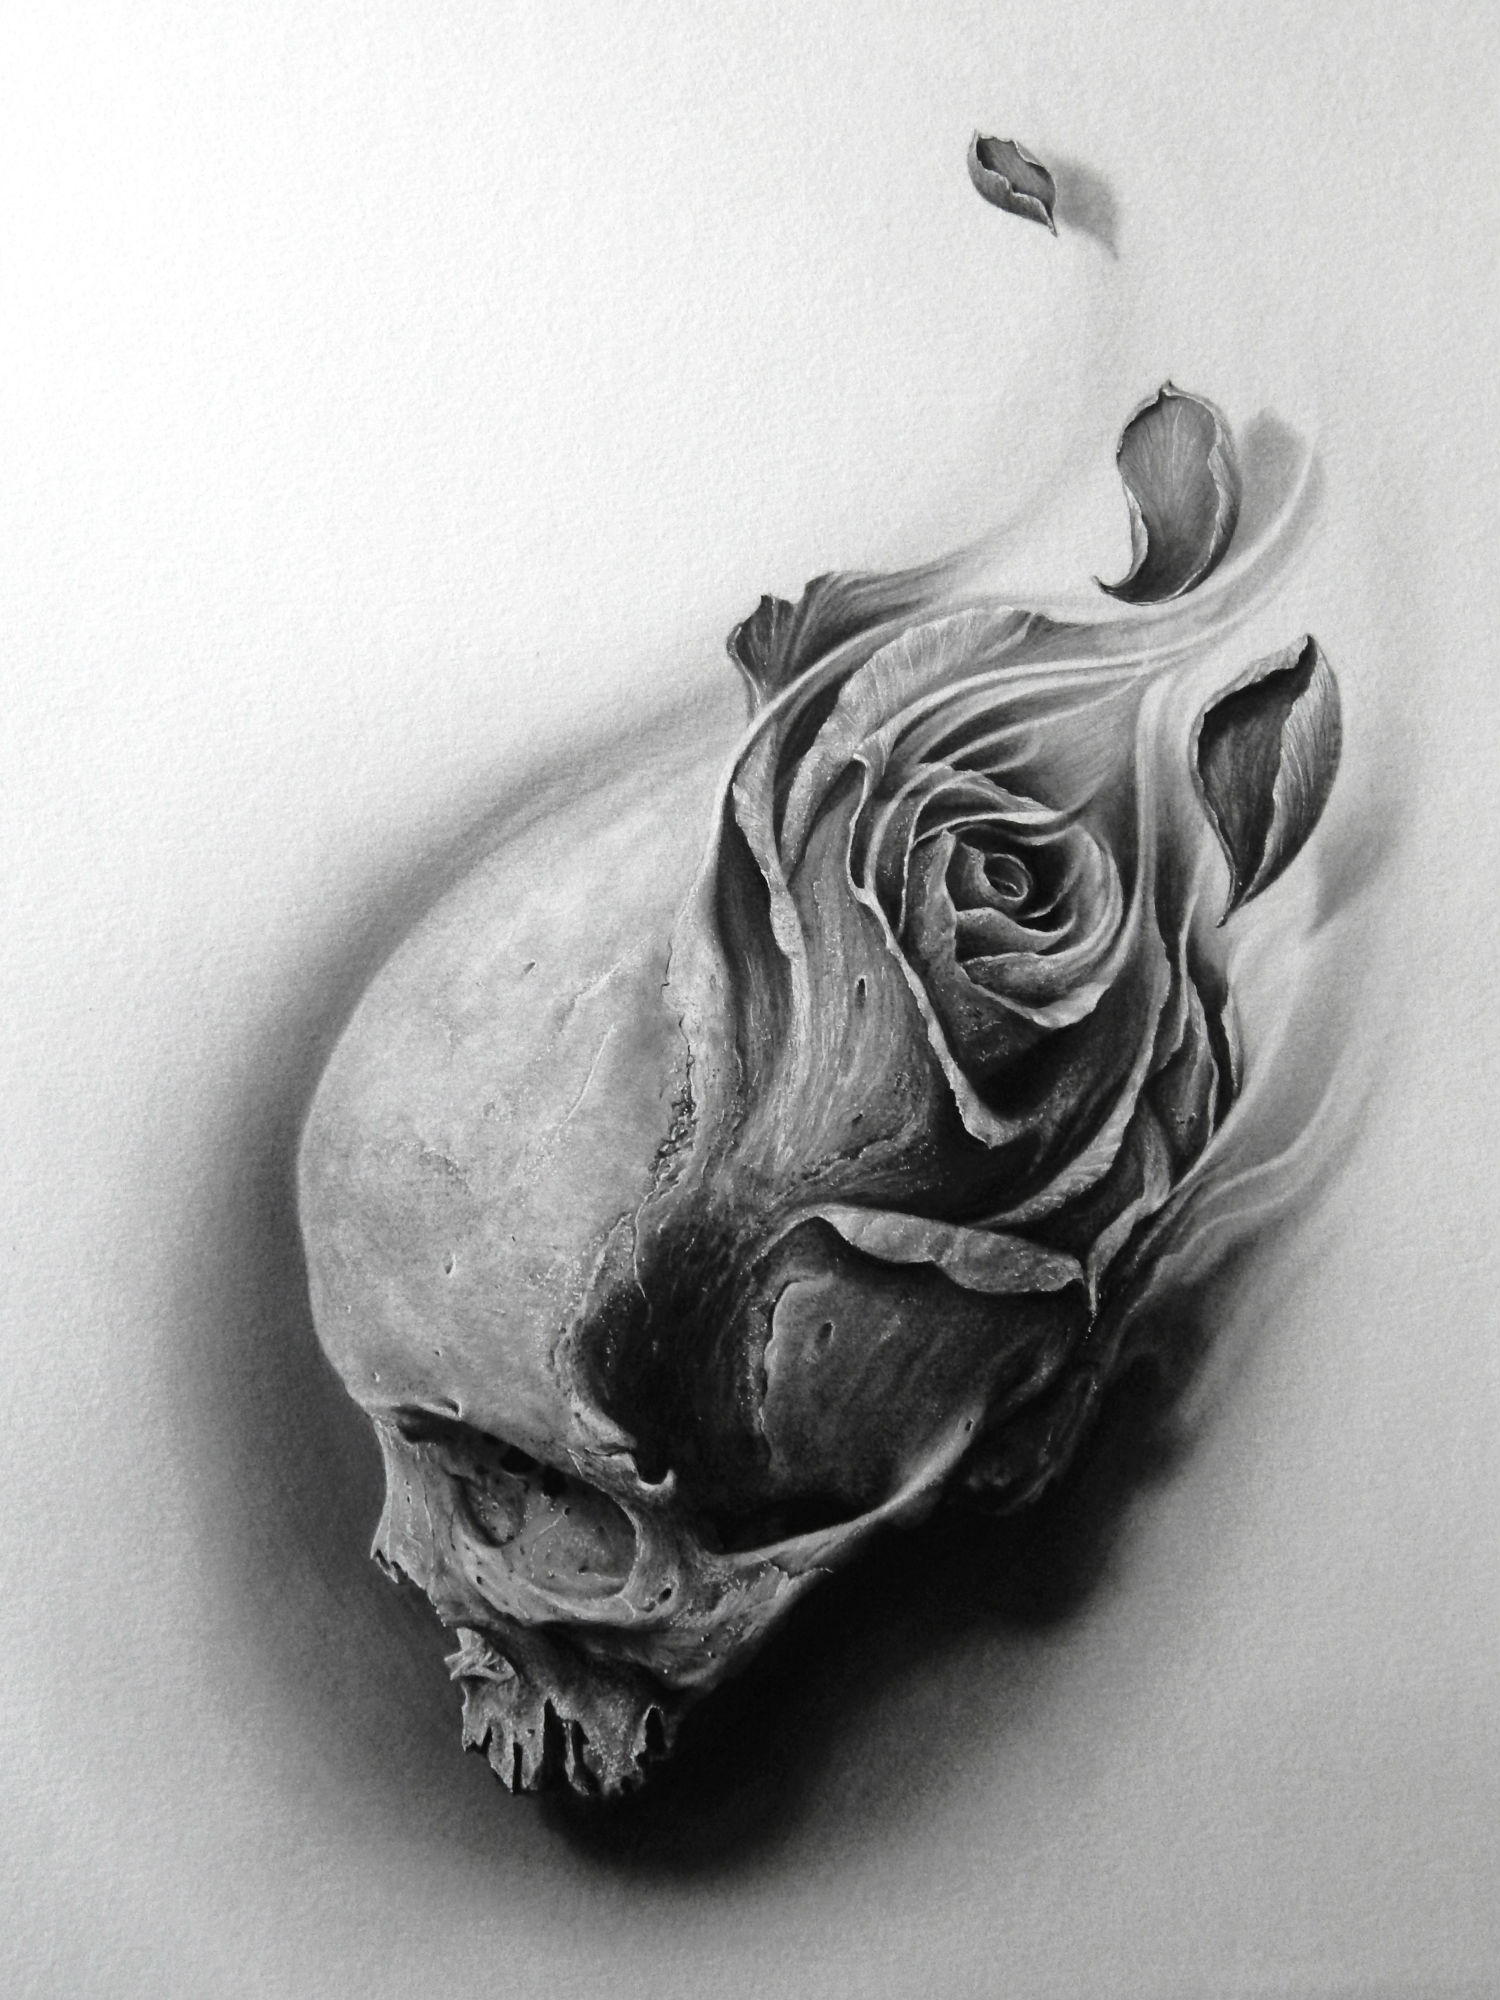 Drawn ssckull flower And Illustrating Beautifully Death and